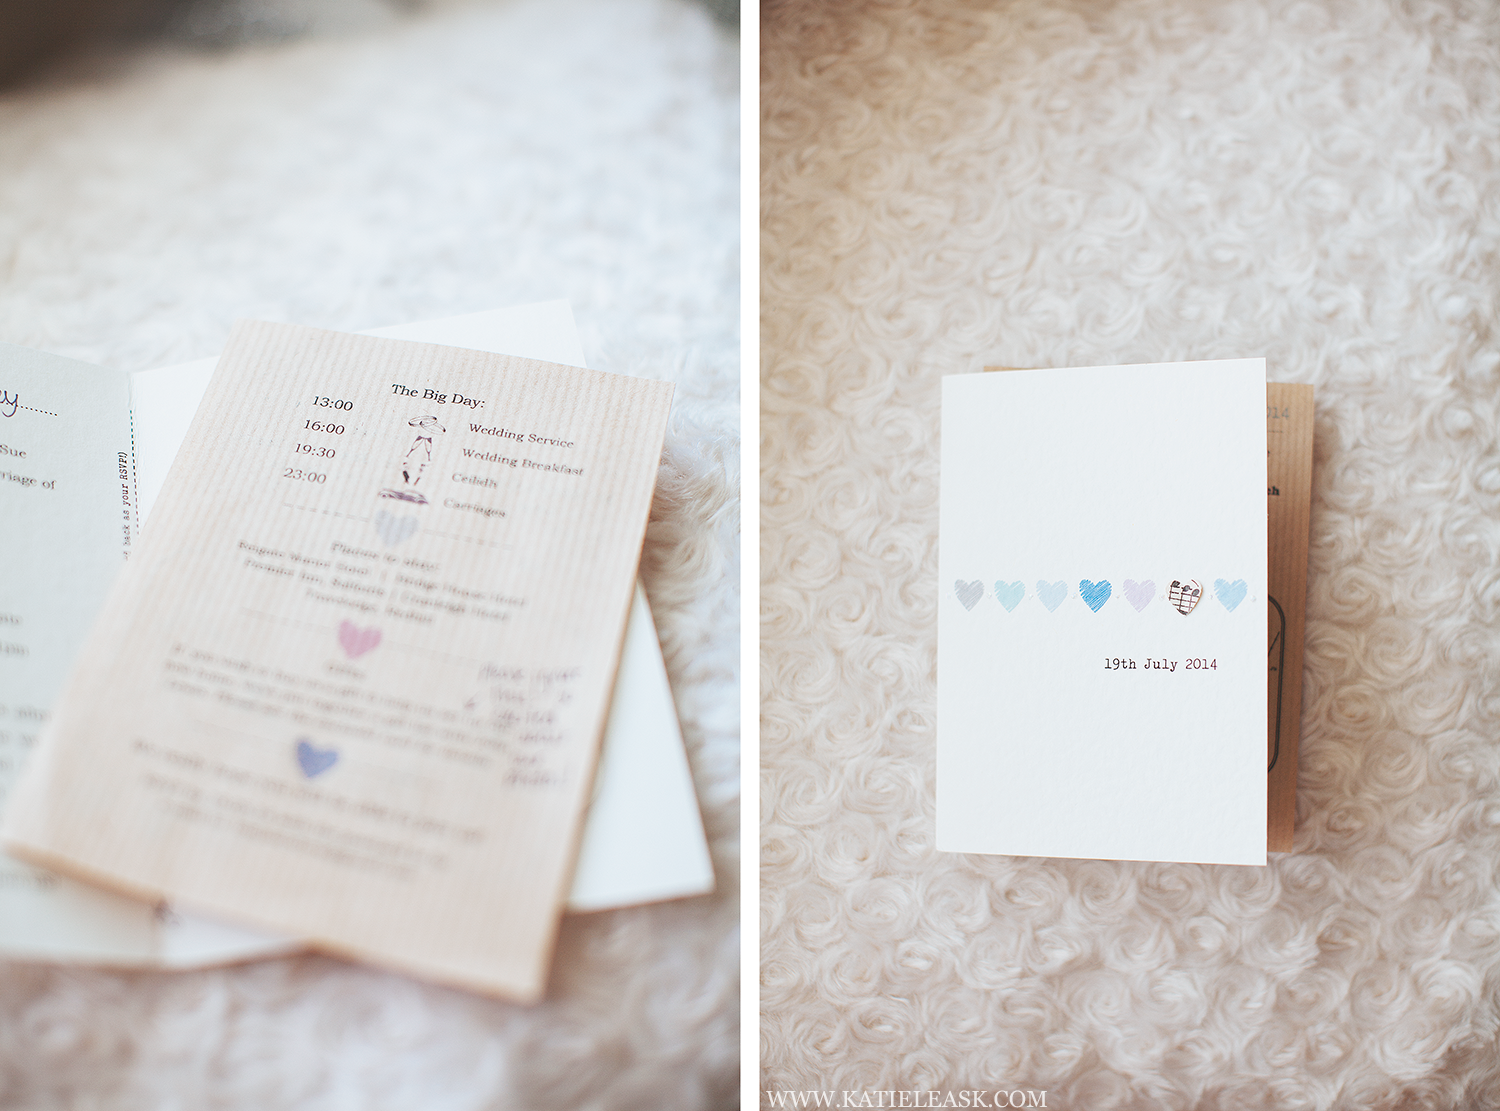 Katie-Leask-Wedding-Invite_002-S